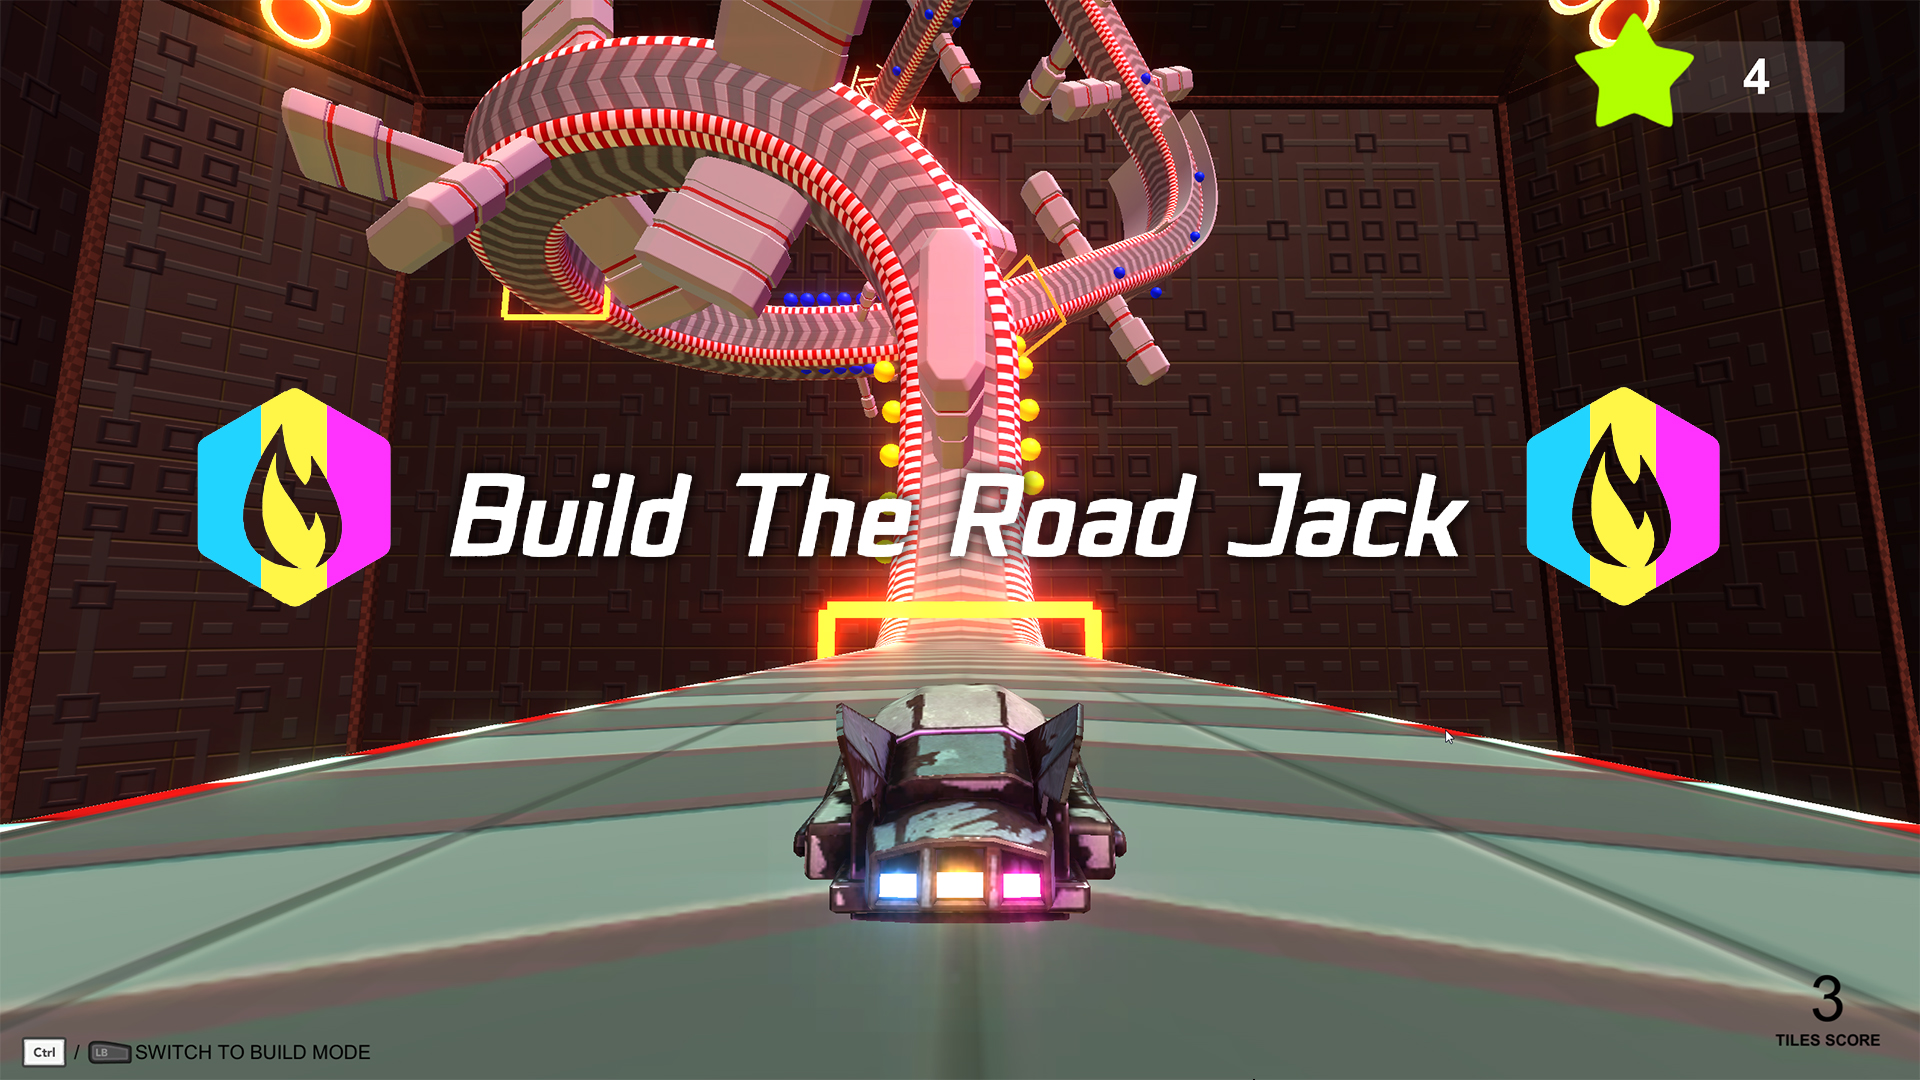 Build The Road Jack